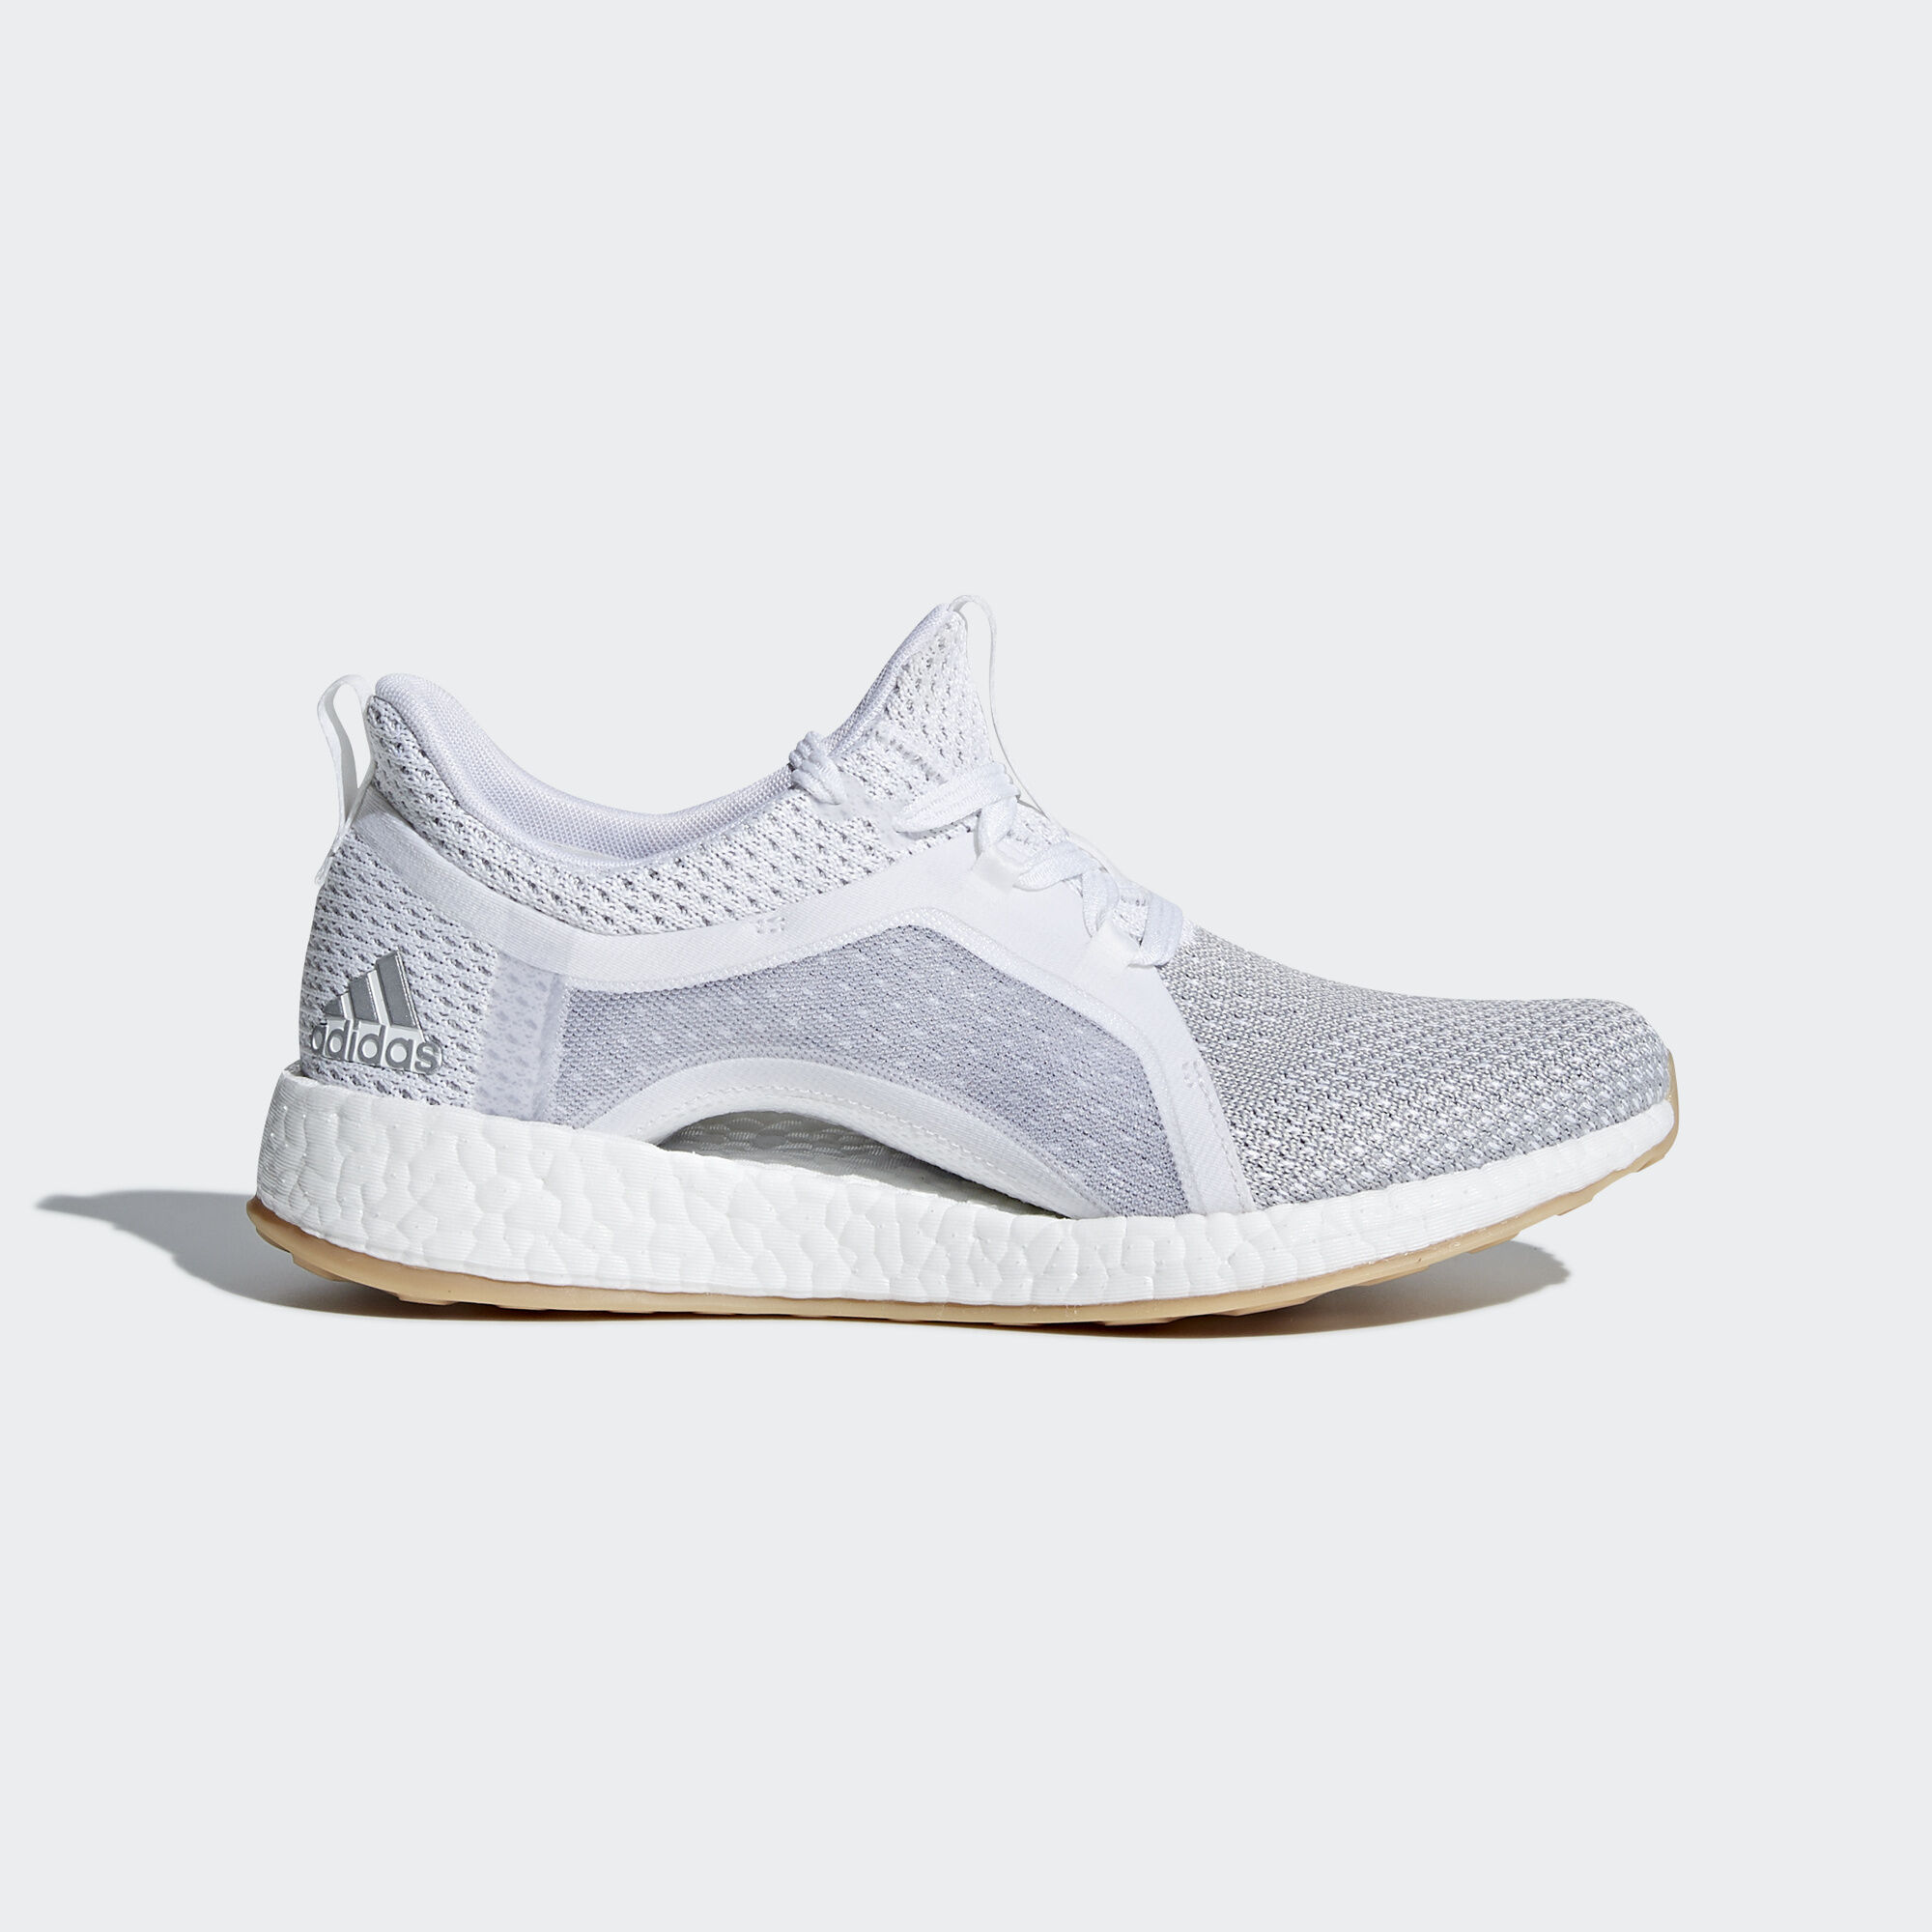 0ca0ad0ea1 adidas - Pureboost X Clima Shoes Ftwr White Silver Metallic Grey Two BB6089